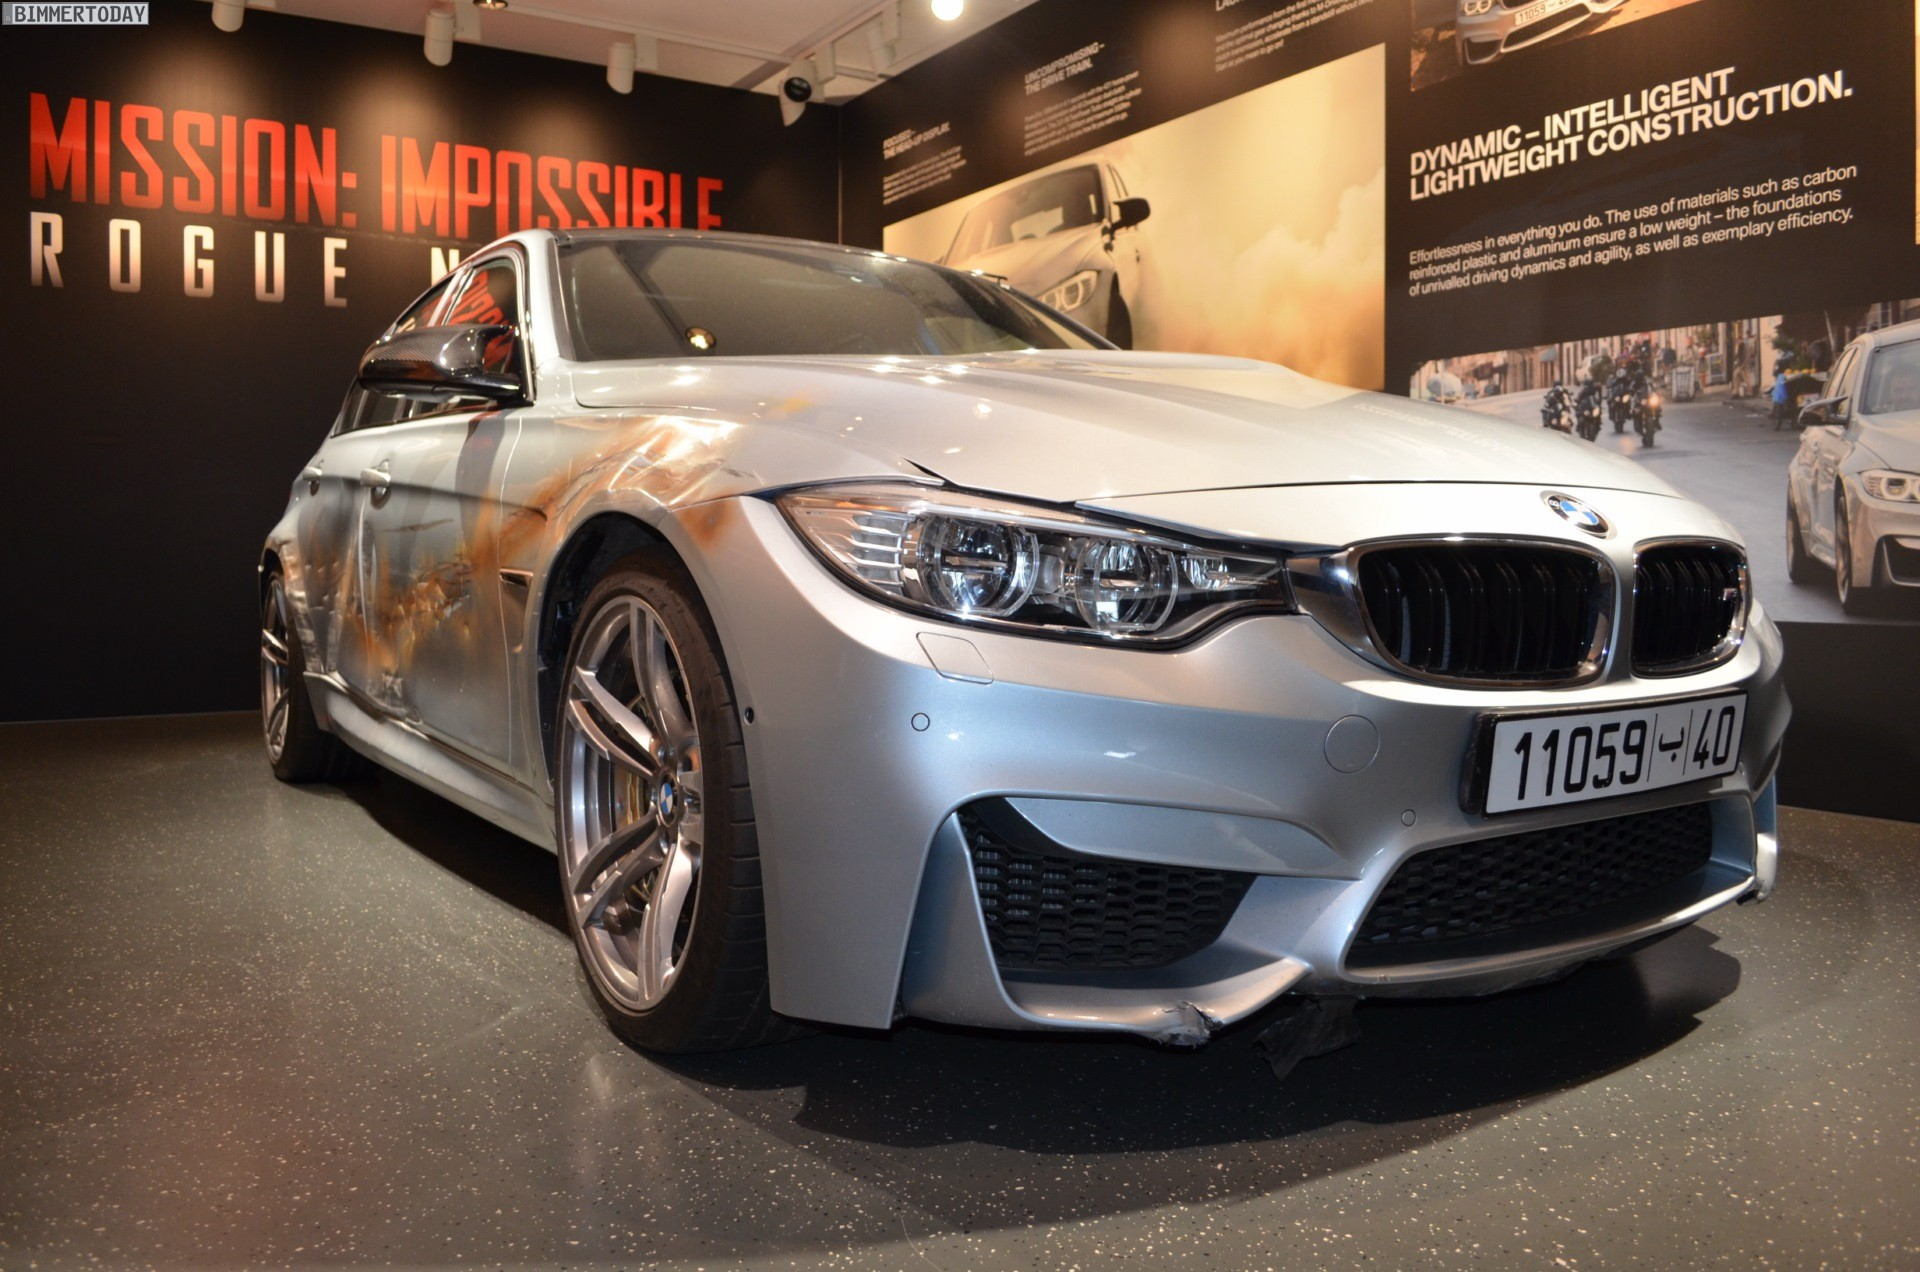 This Bmw M3 Filled With Bullet Holes Comes Straight From The Set Of Mission Impossible 5